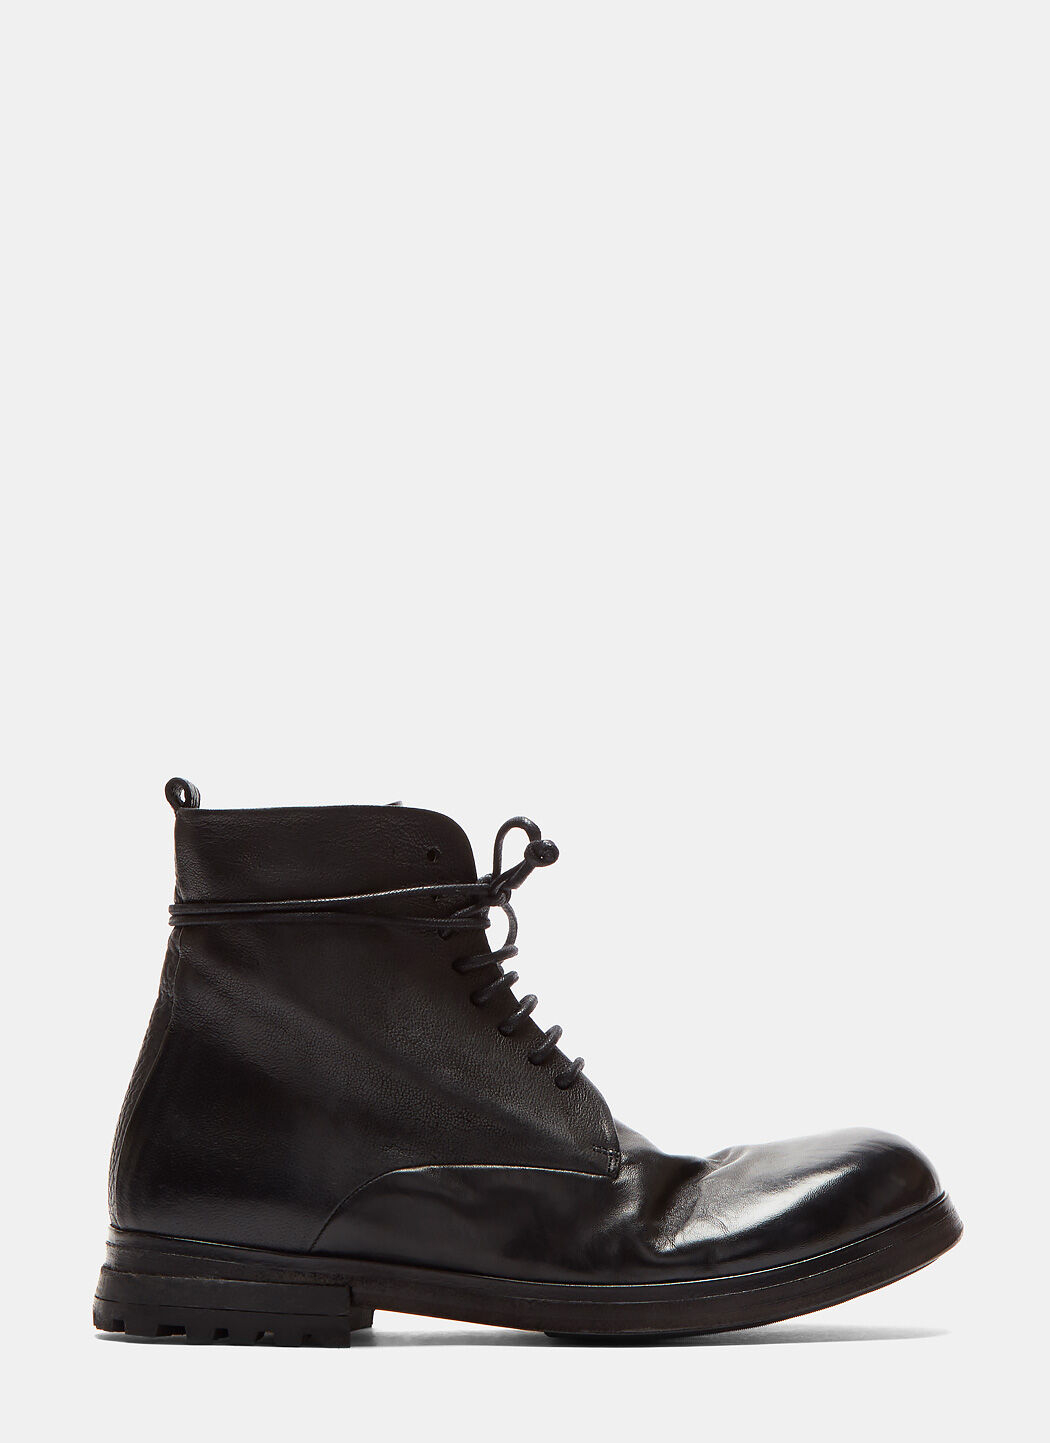 MARSÈLL Zuccarr High Leather Boots In Black